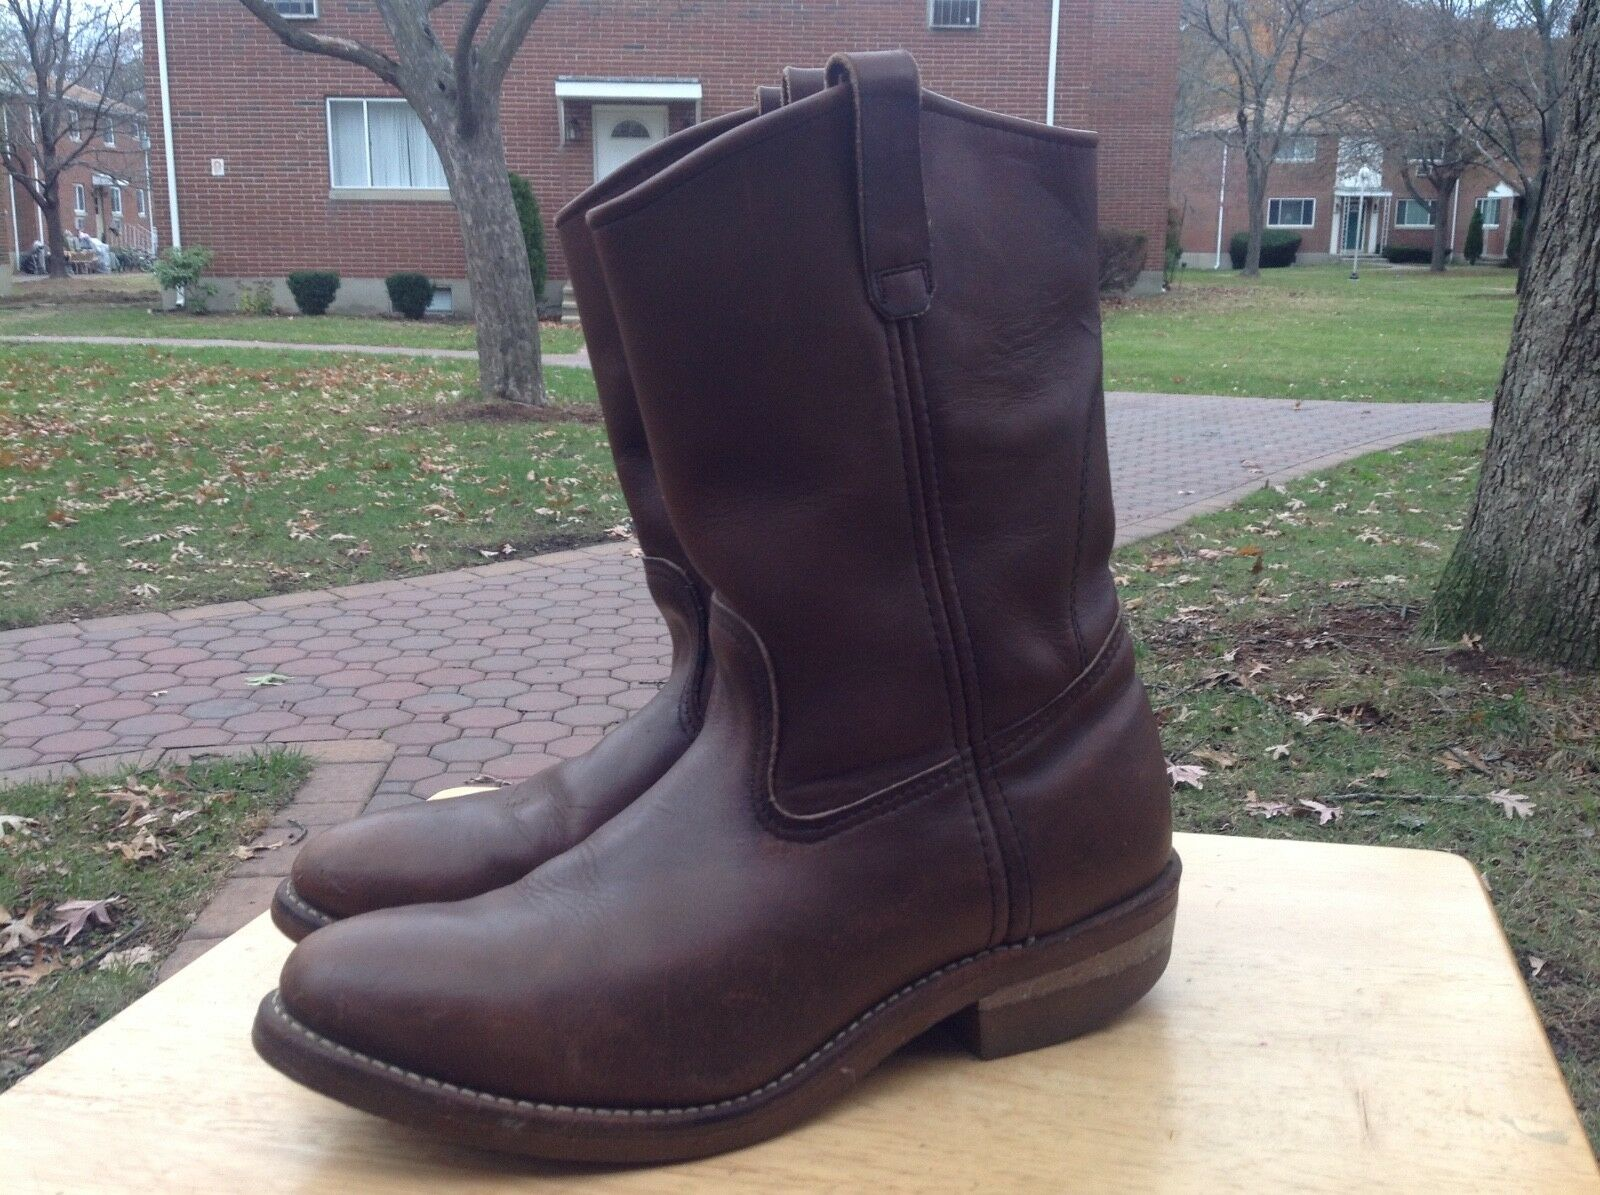 Vintage 80's Red Wing 293 Work Boots Men's Size 9.5 E